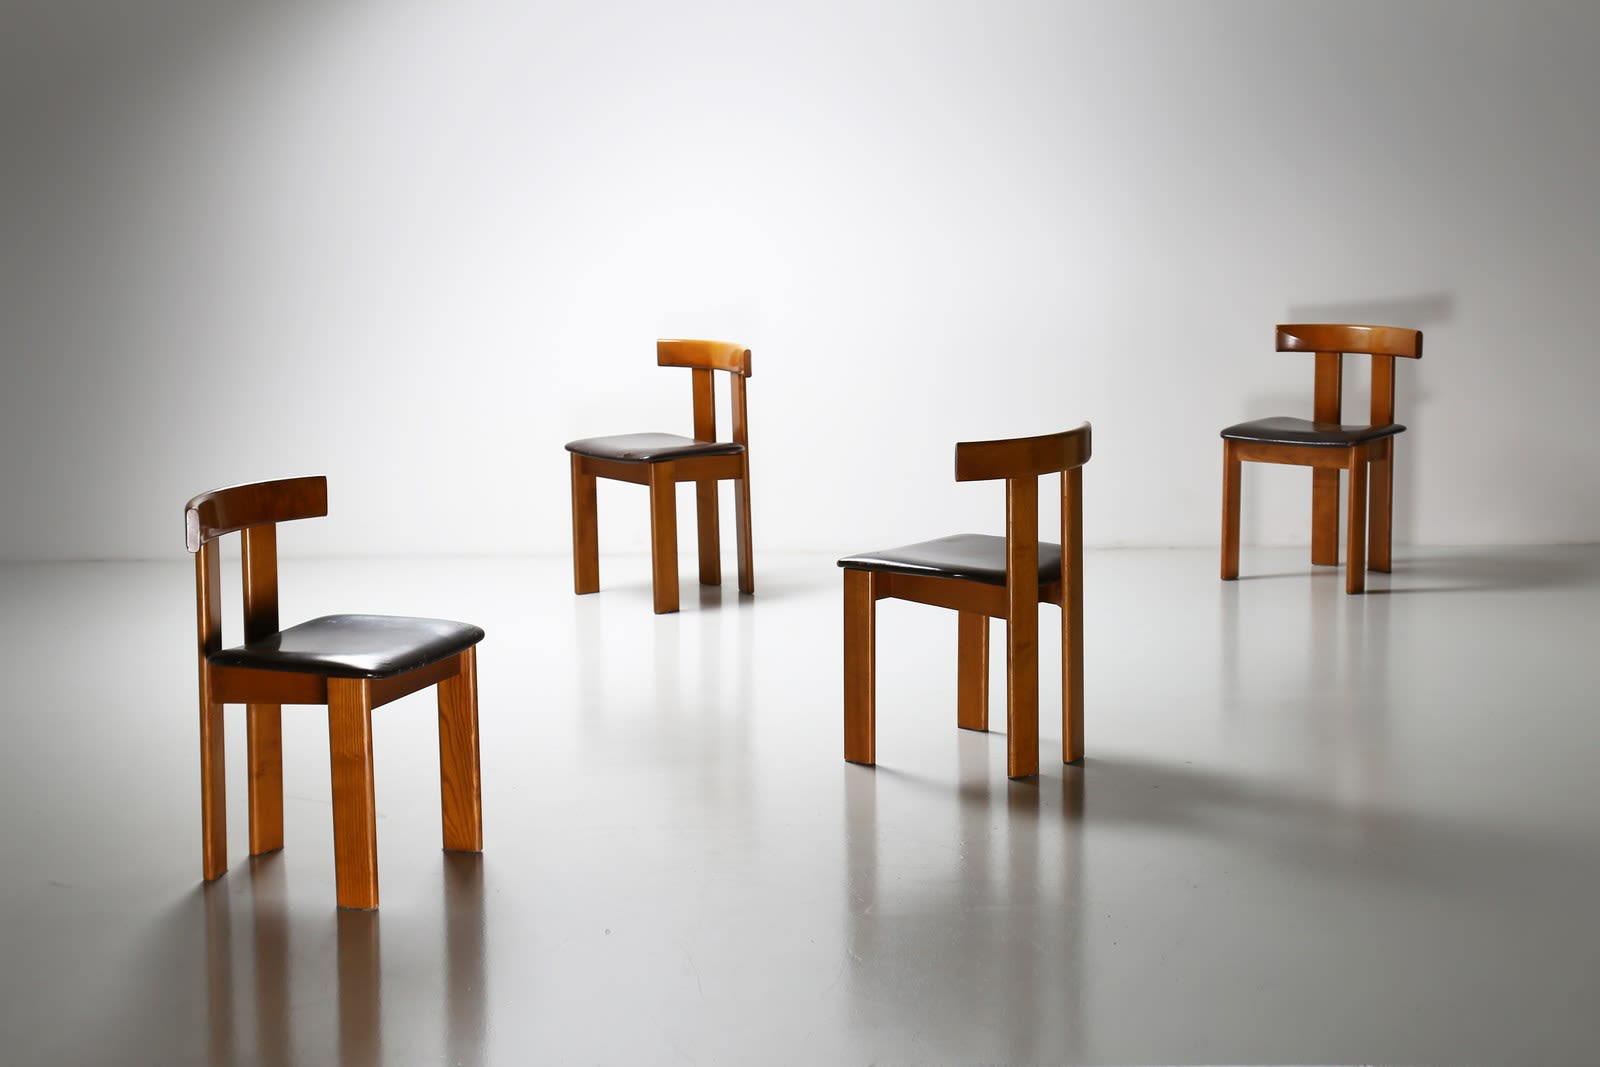 Luigi Vaghi, Set of four chairs